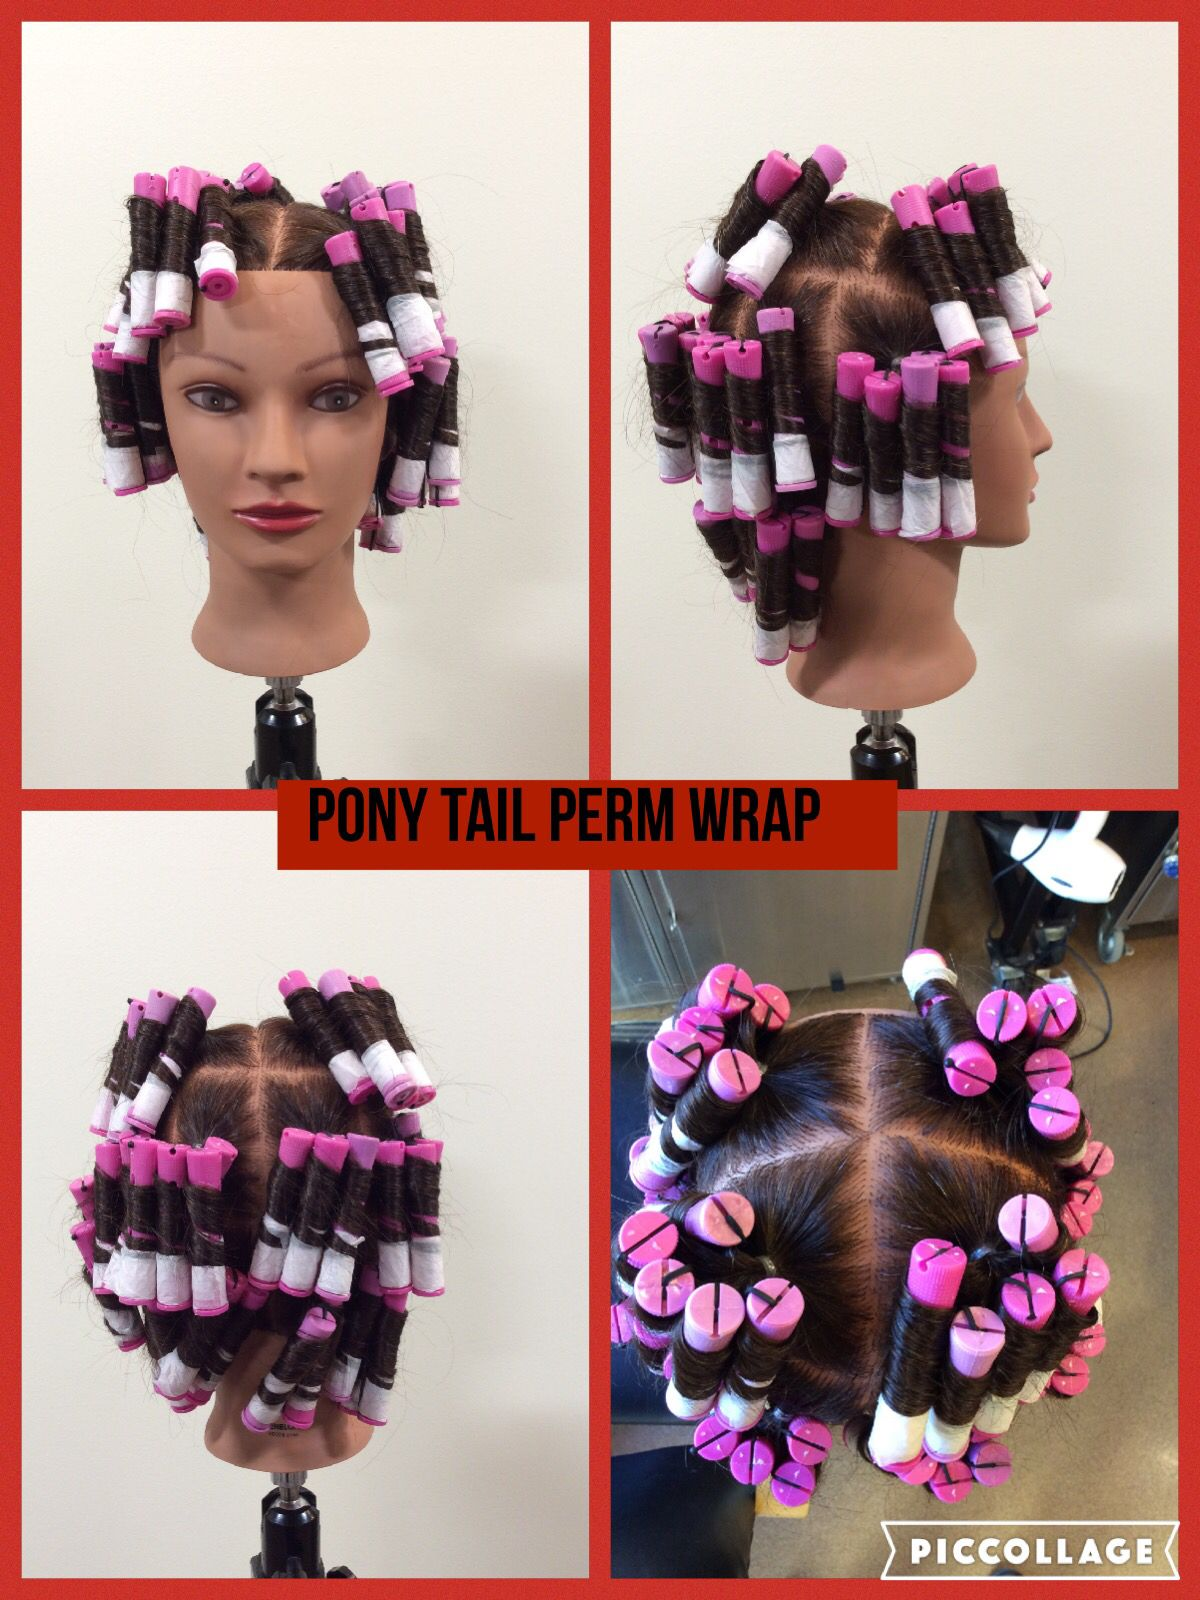 Undo straight perm - Pony Tail Perm Wrap